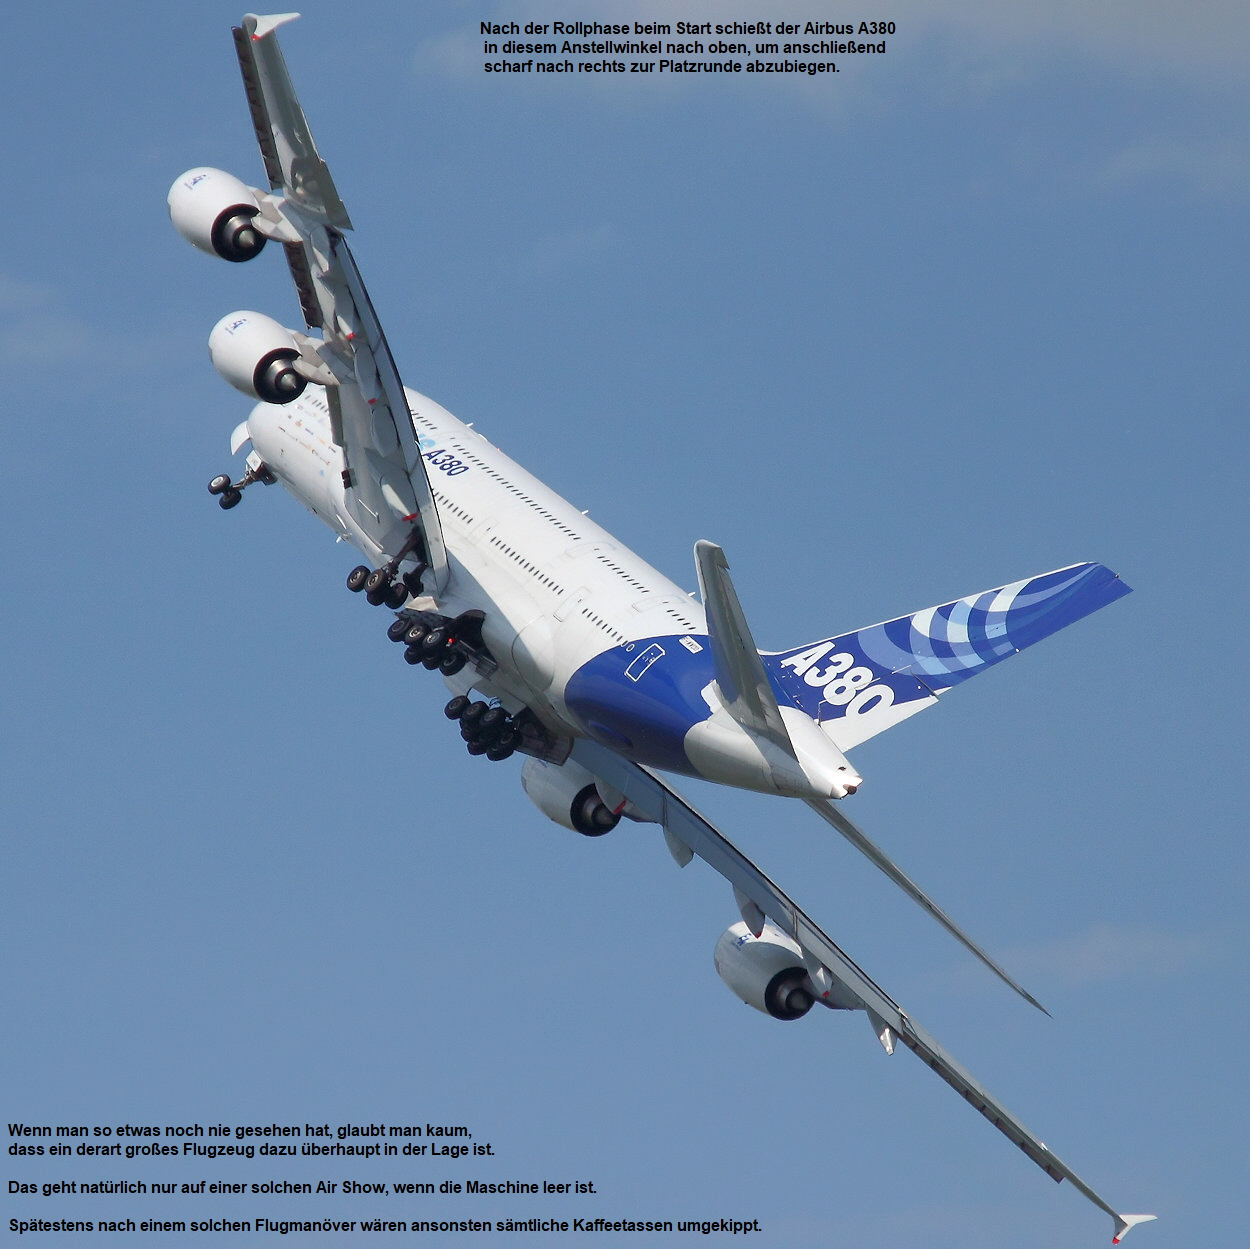 Airbus A380-800 - Startphase